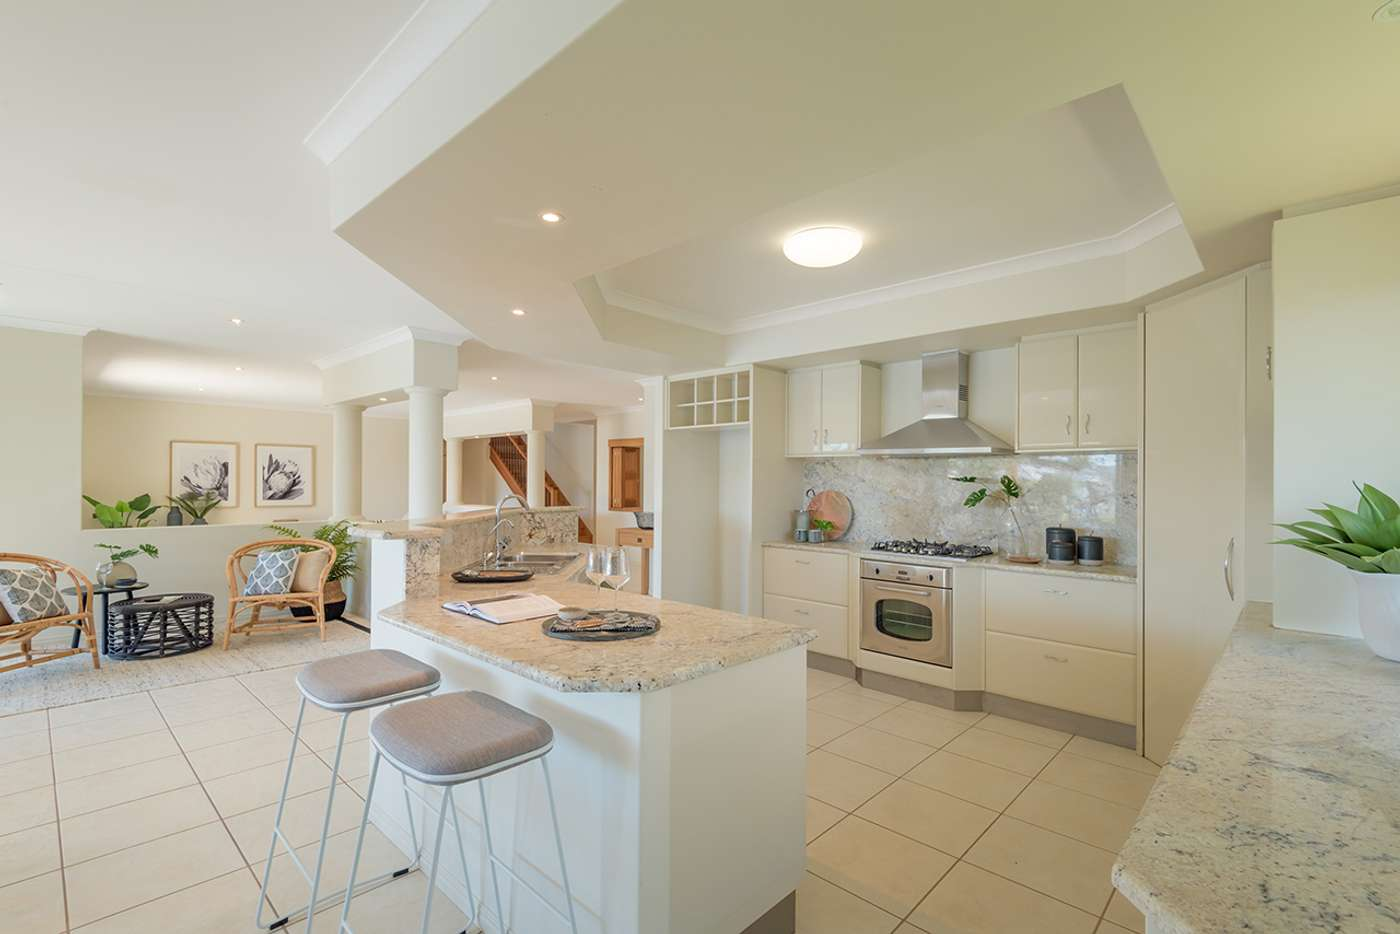 Sixth view of Homely house listing, 9 Mizzen Pl, Twin Waters QLD 4564